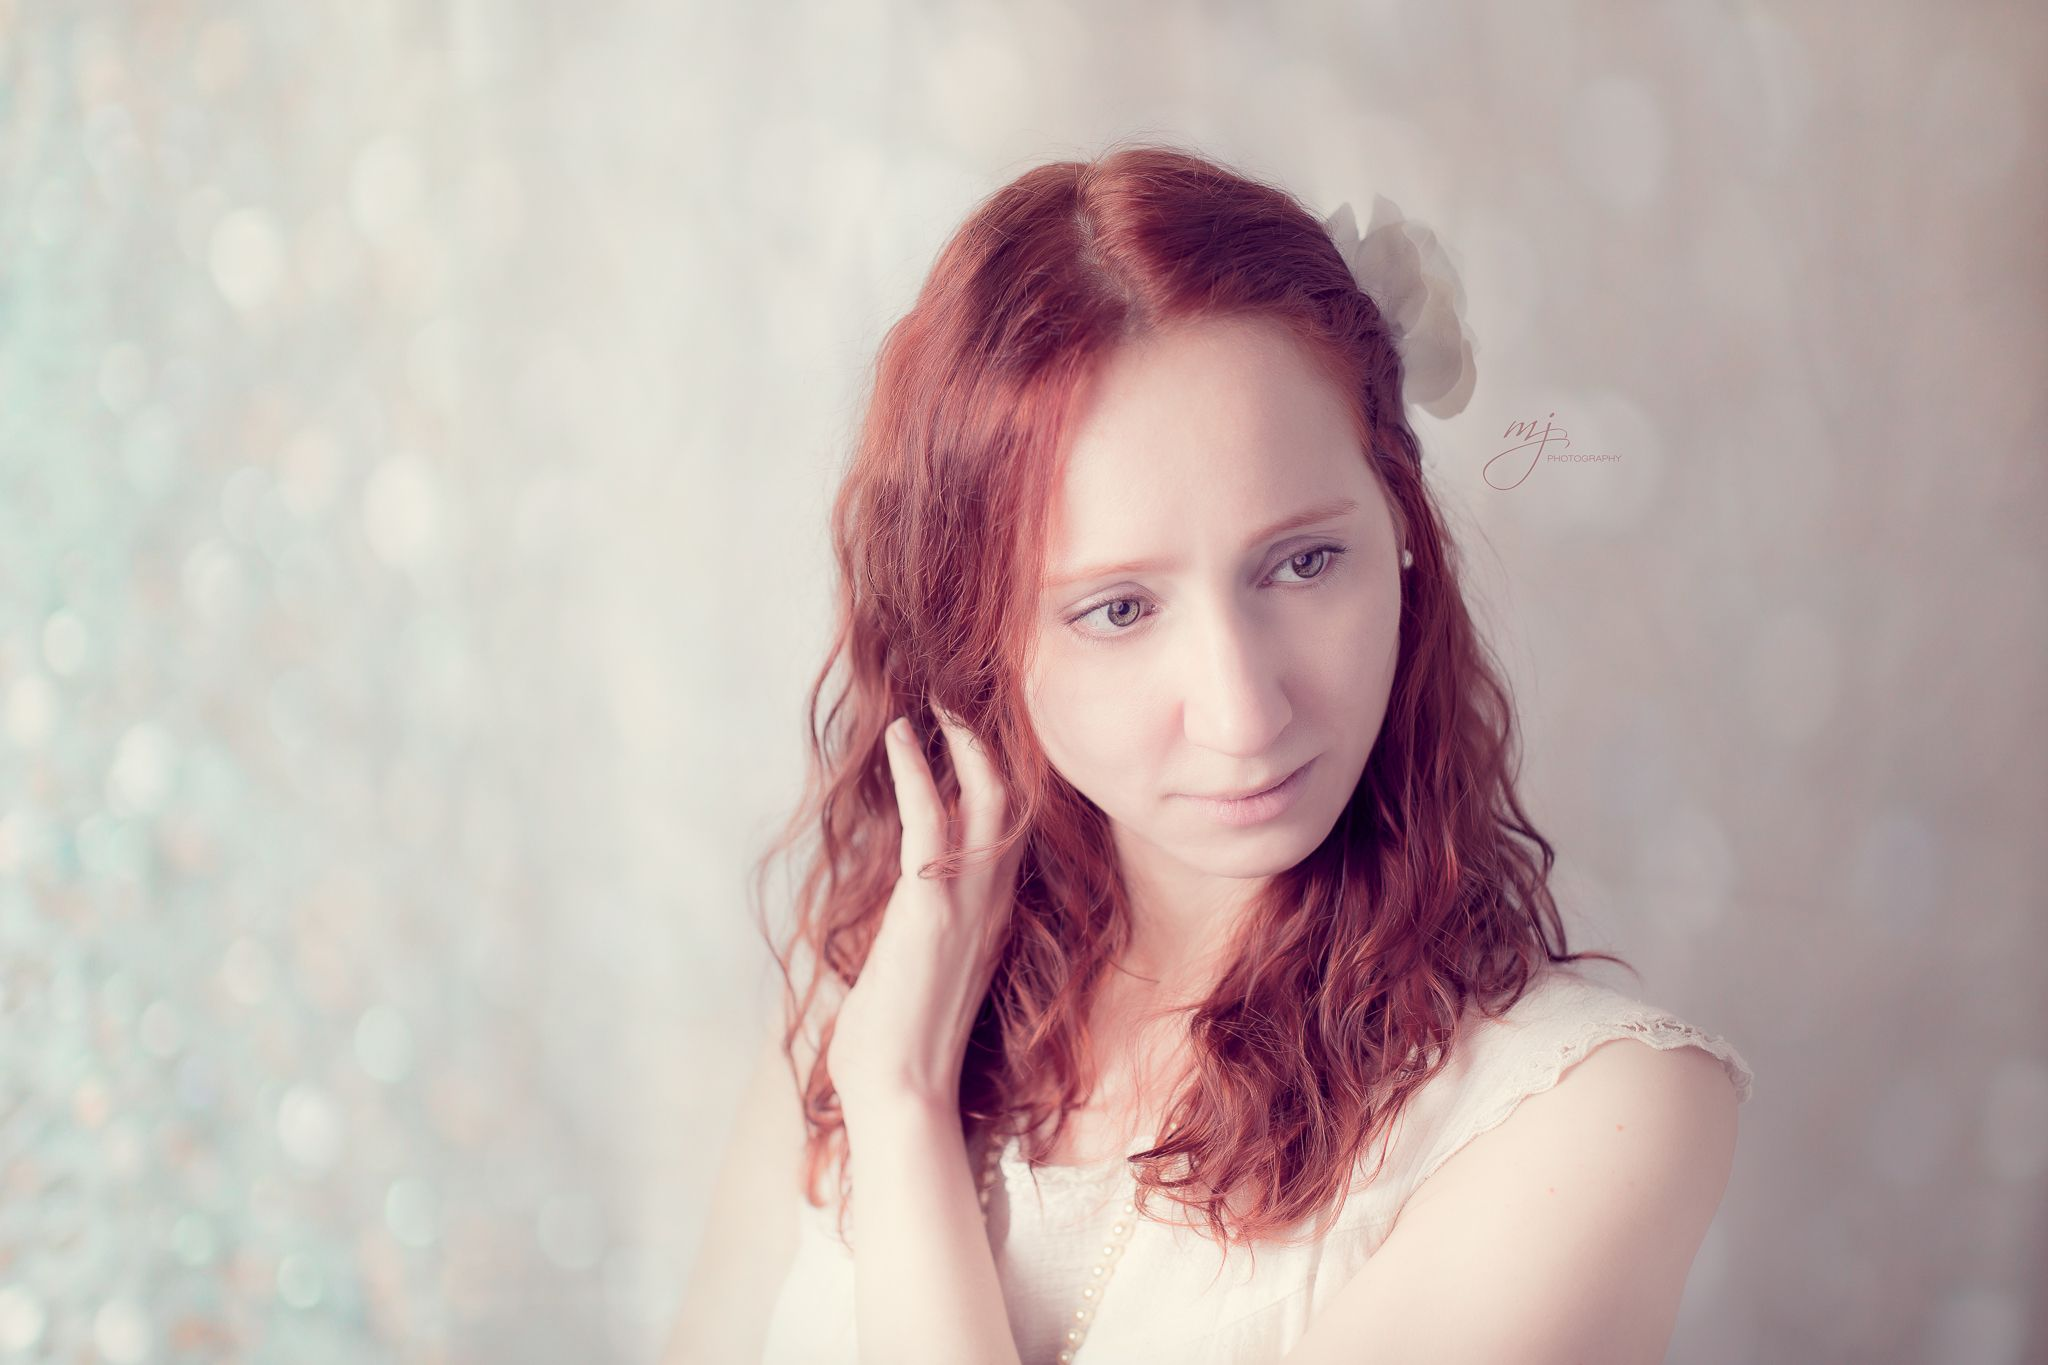 Gorgeous Redhead. Can't explain it, but I'm totally drawn to the beauty of red-haired women. They are just magical and have an enchanted, otherworldly aura.